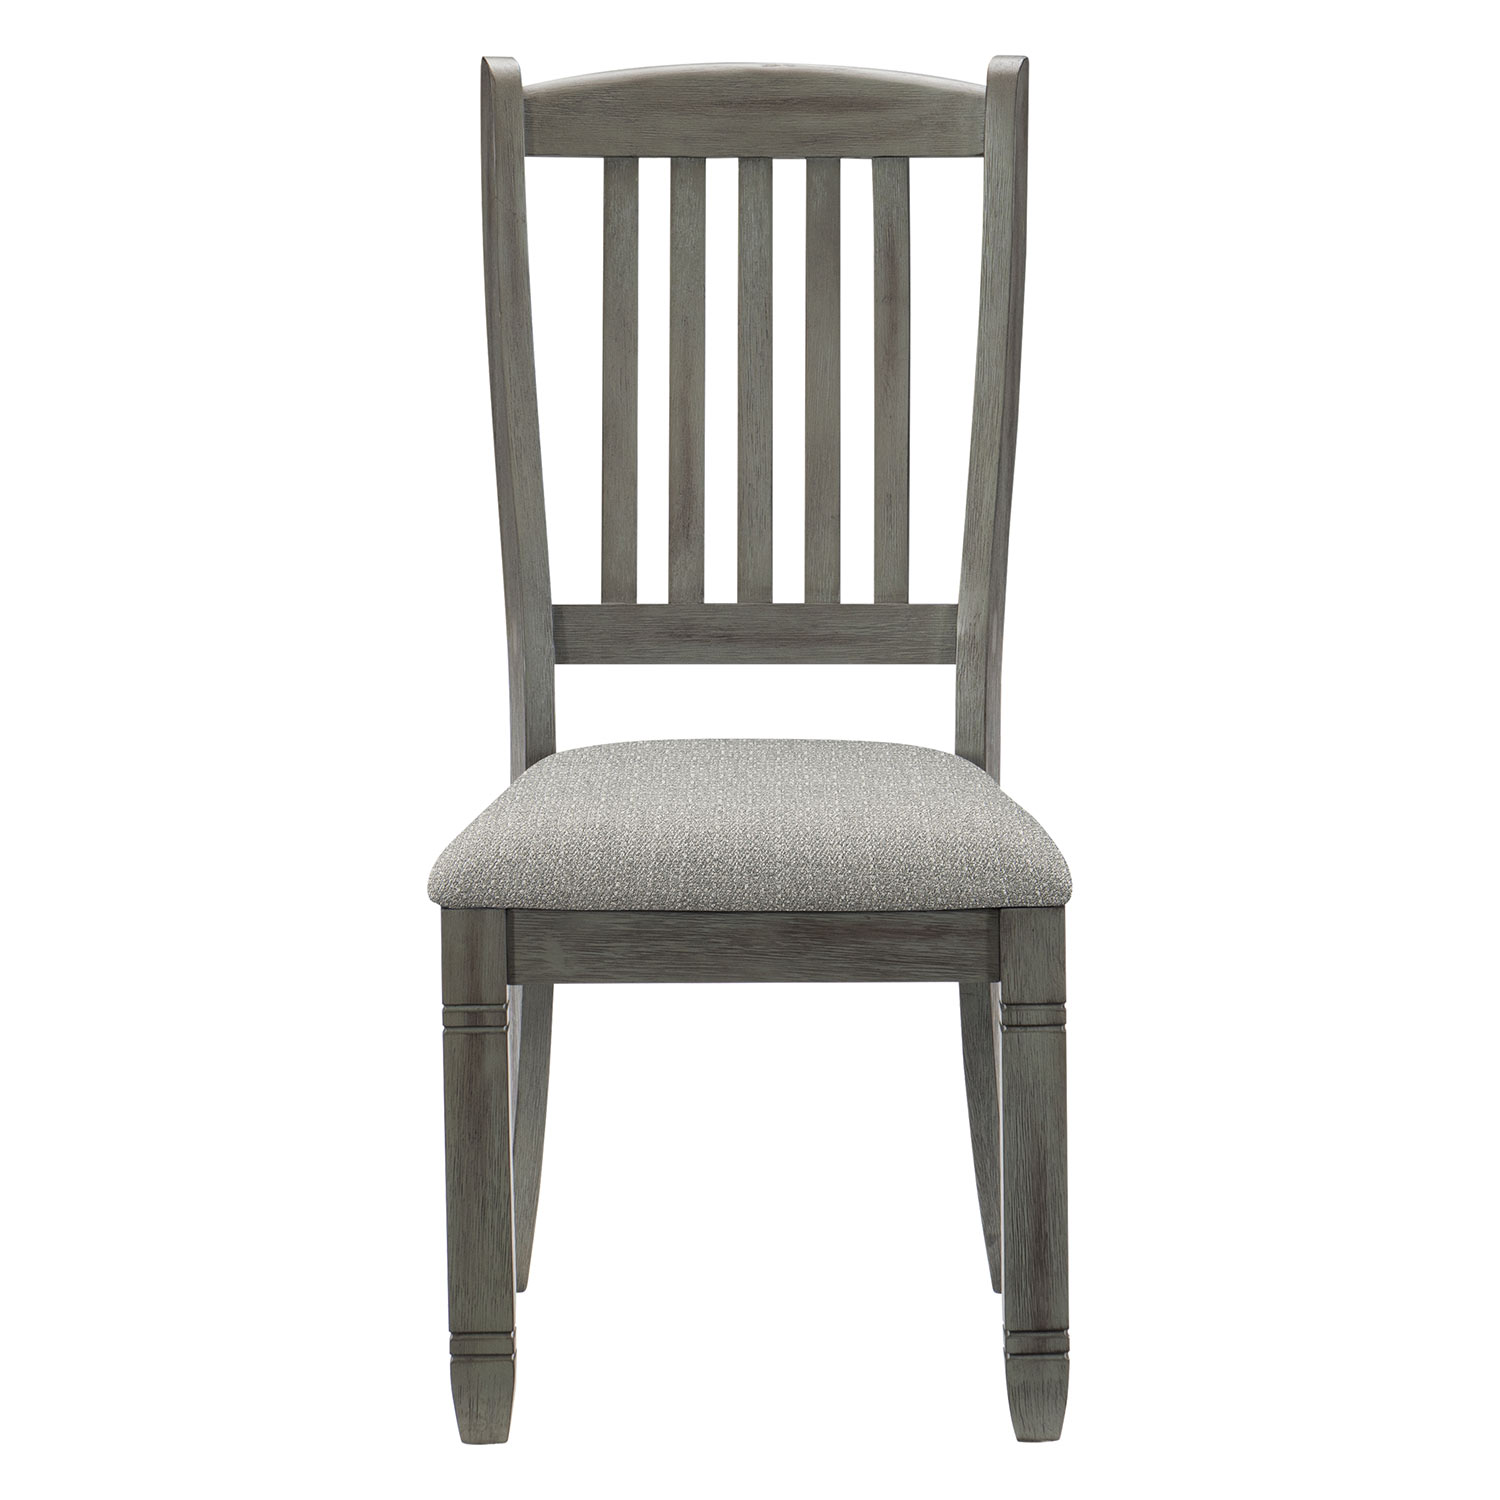 Homelegance Granby Side Chair - Antique Gray and Coffee